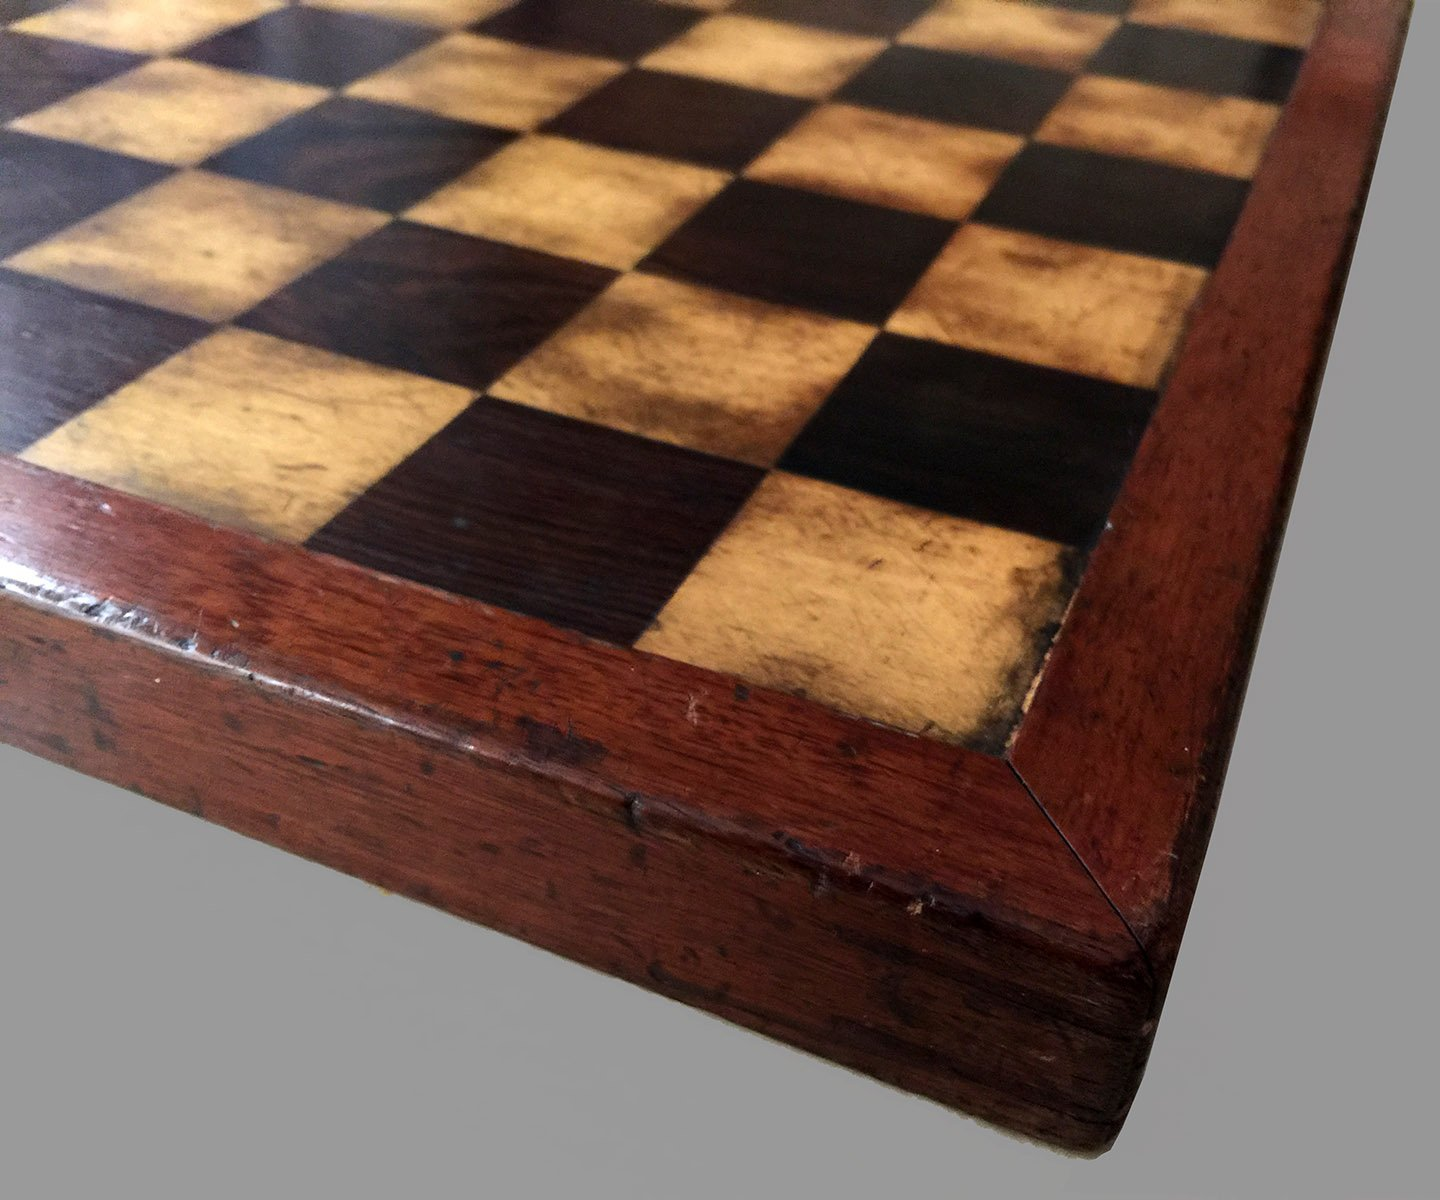 Small Antique Jaques Style Chessboard